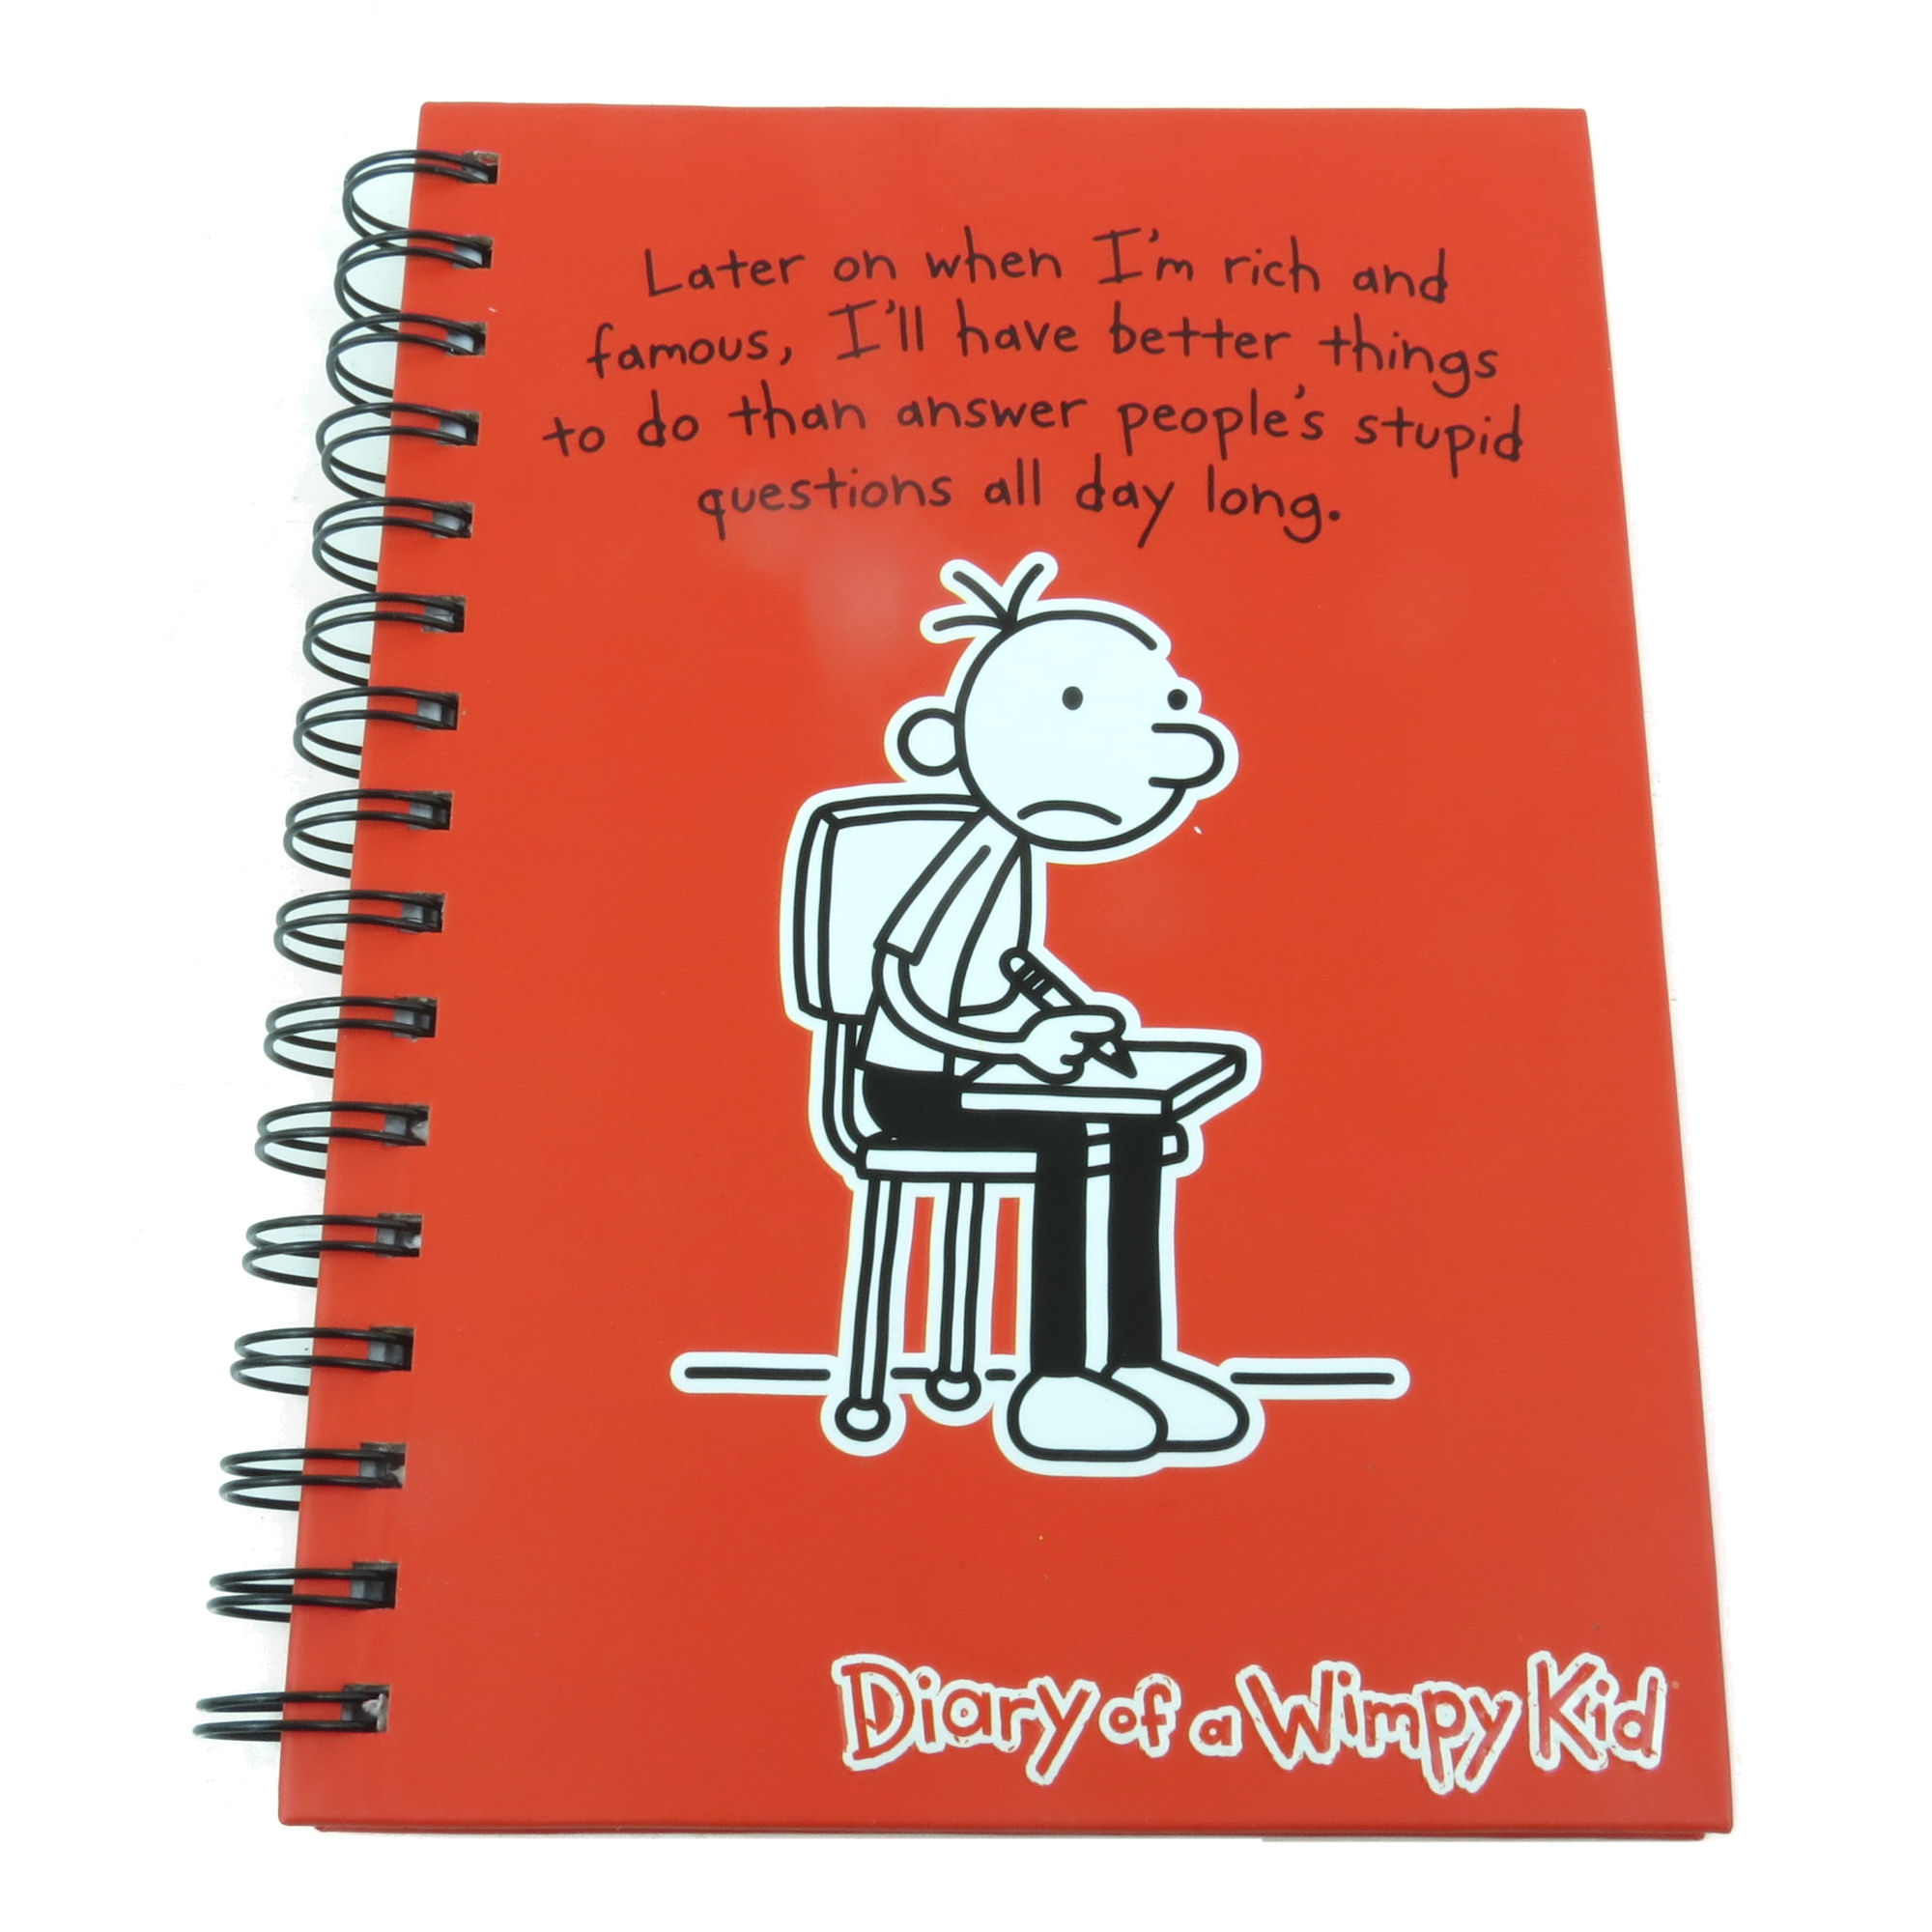 A5 diary of a wimpy kid hardback notebook journal lined paper pad a5 diary of a wimpy kid hardback notebook solutioingenieria